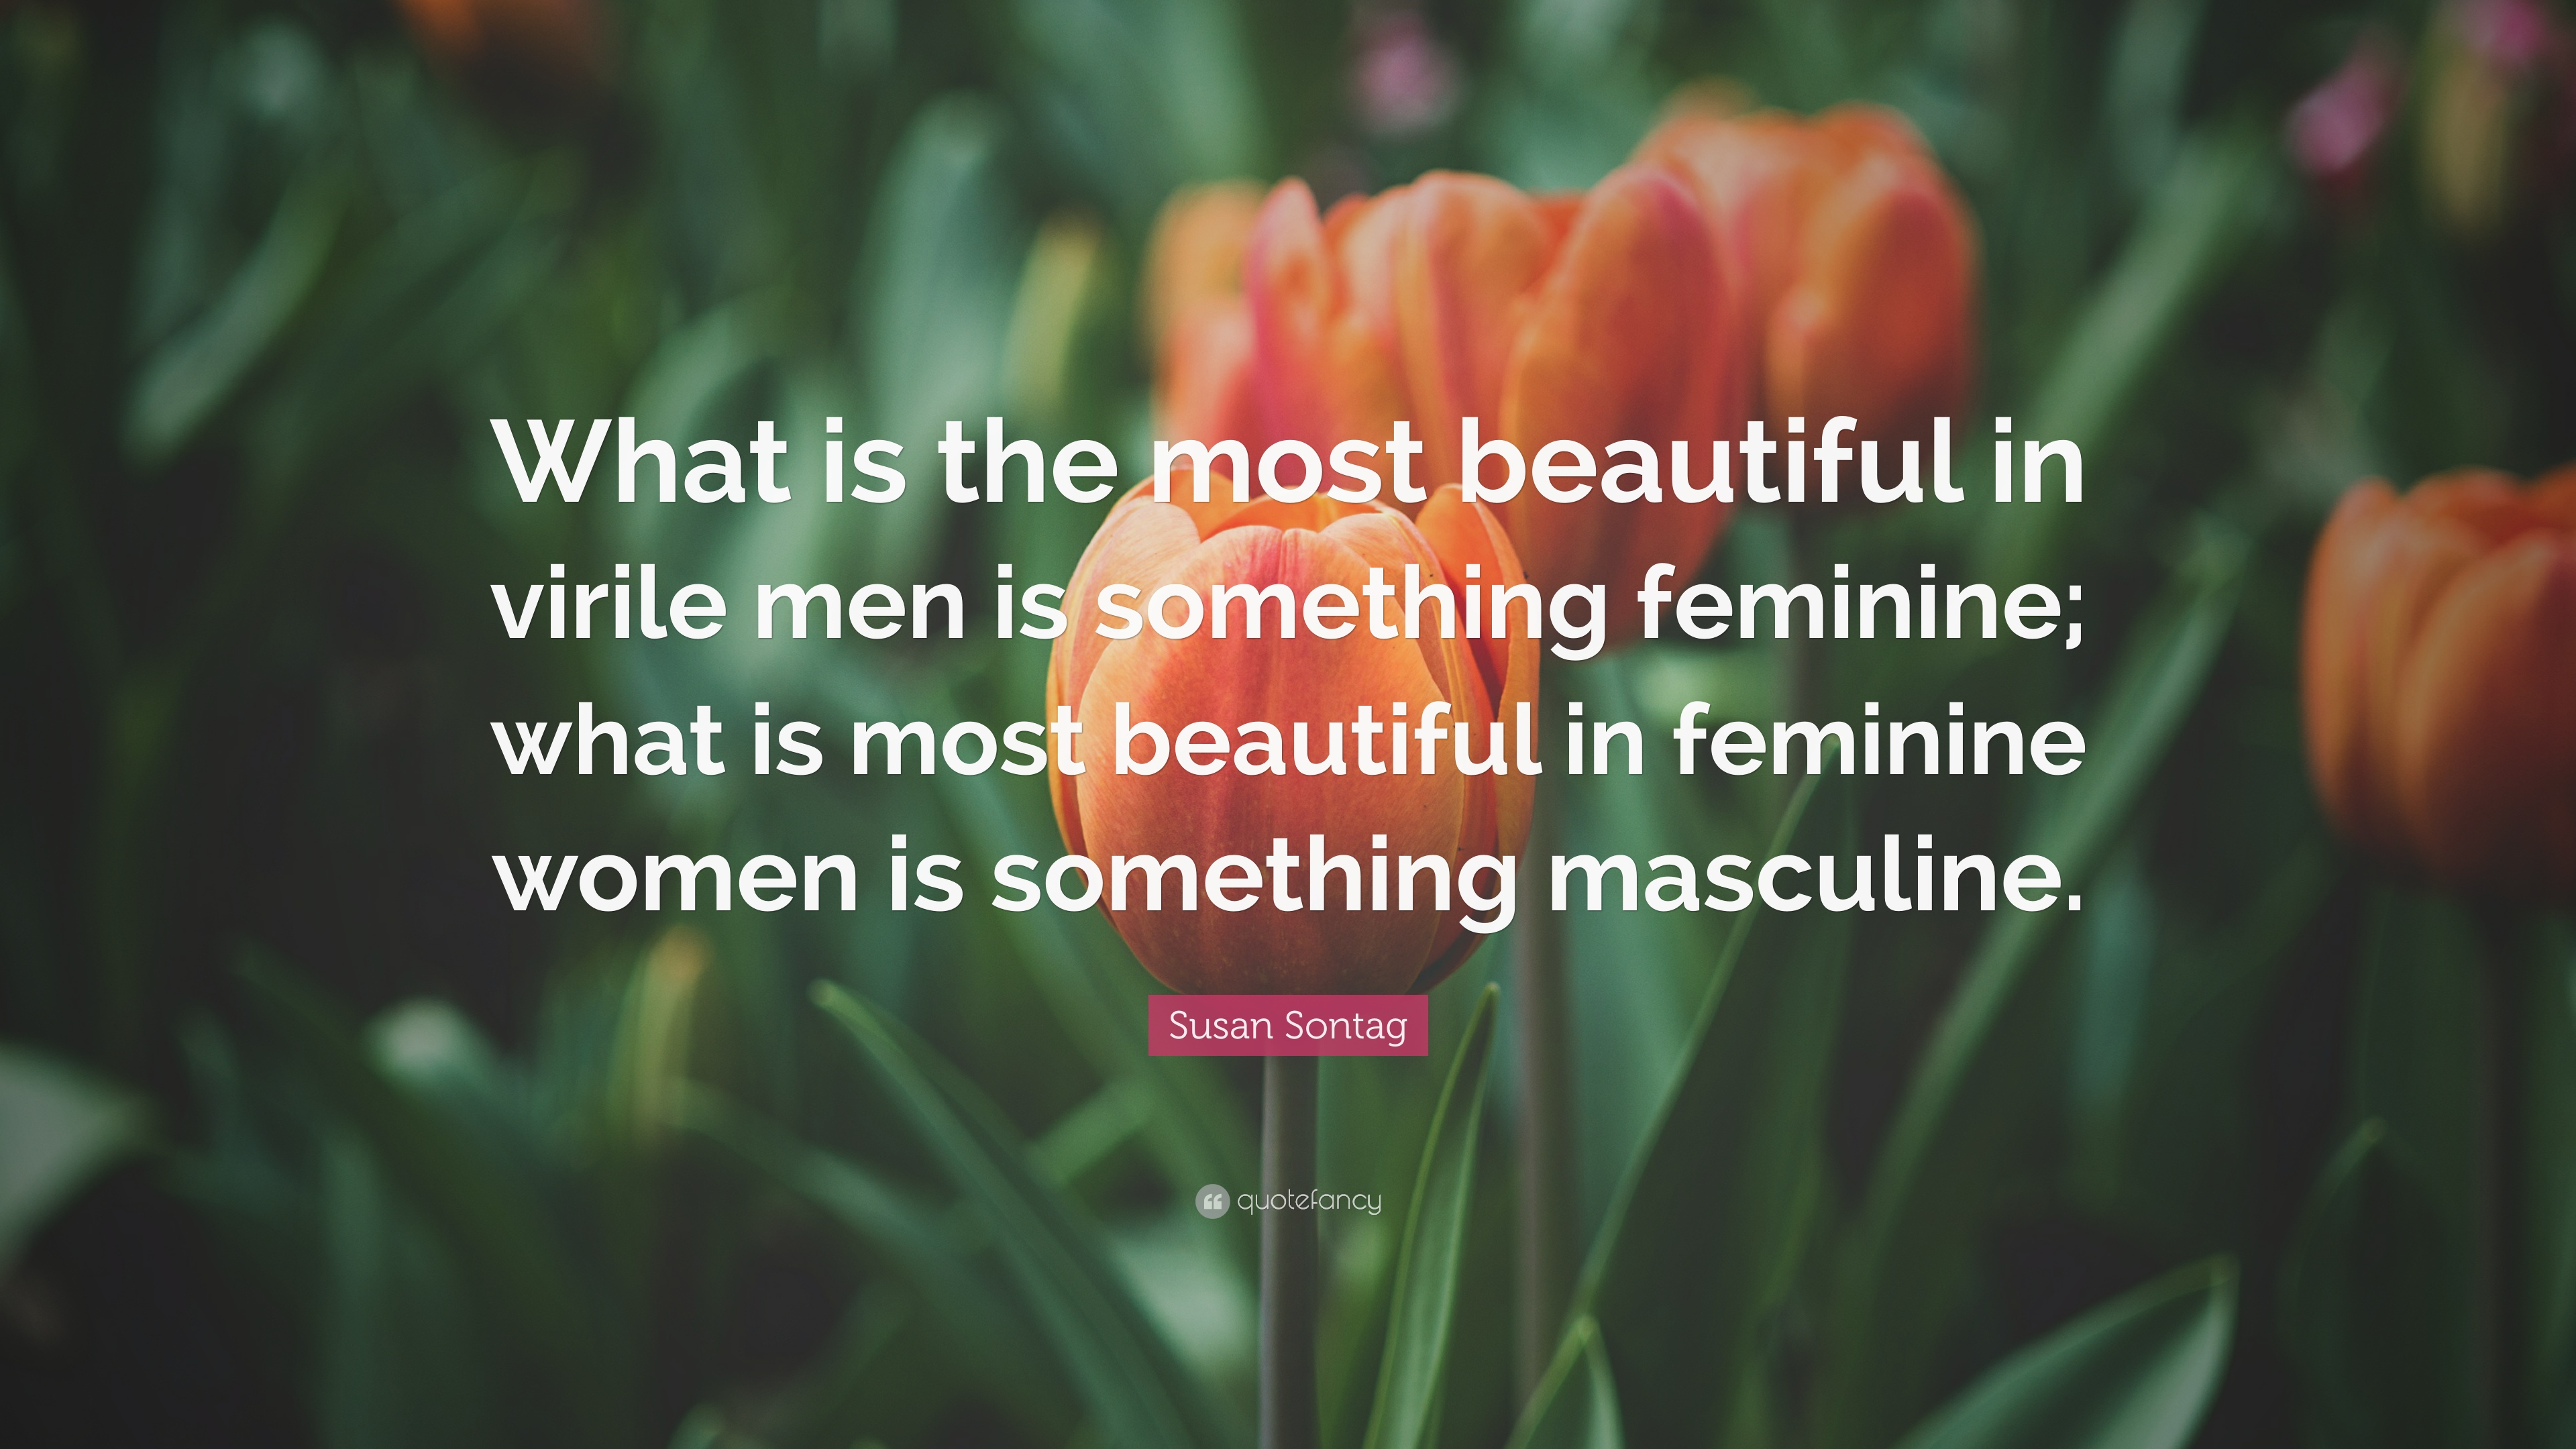 Susan sontag quote what is the most beautiful in virile men is susan sontag quote what is the most beautiful in virile men is something feminine izmirmasajfo